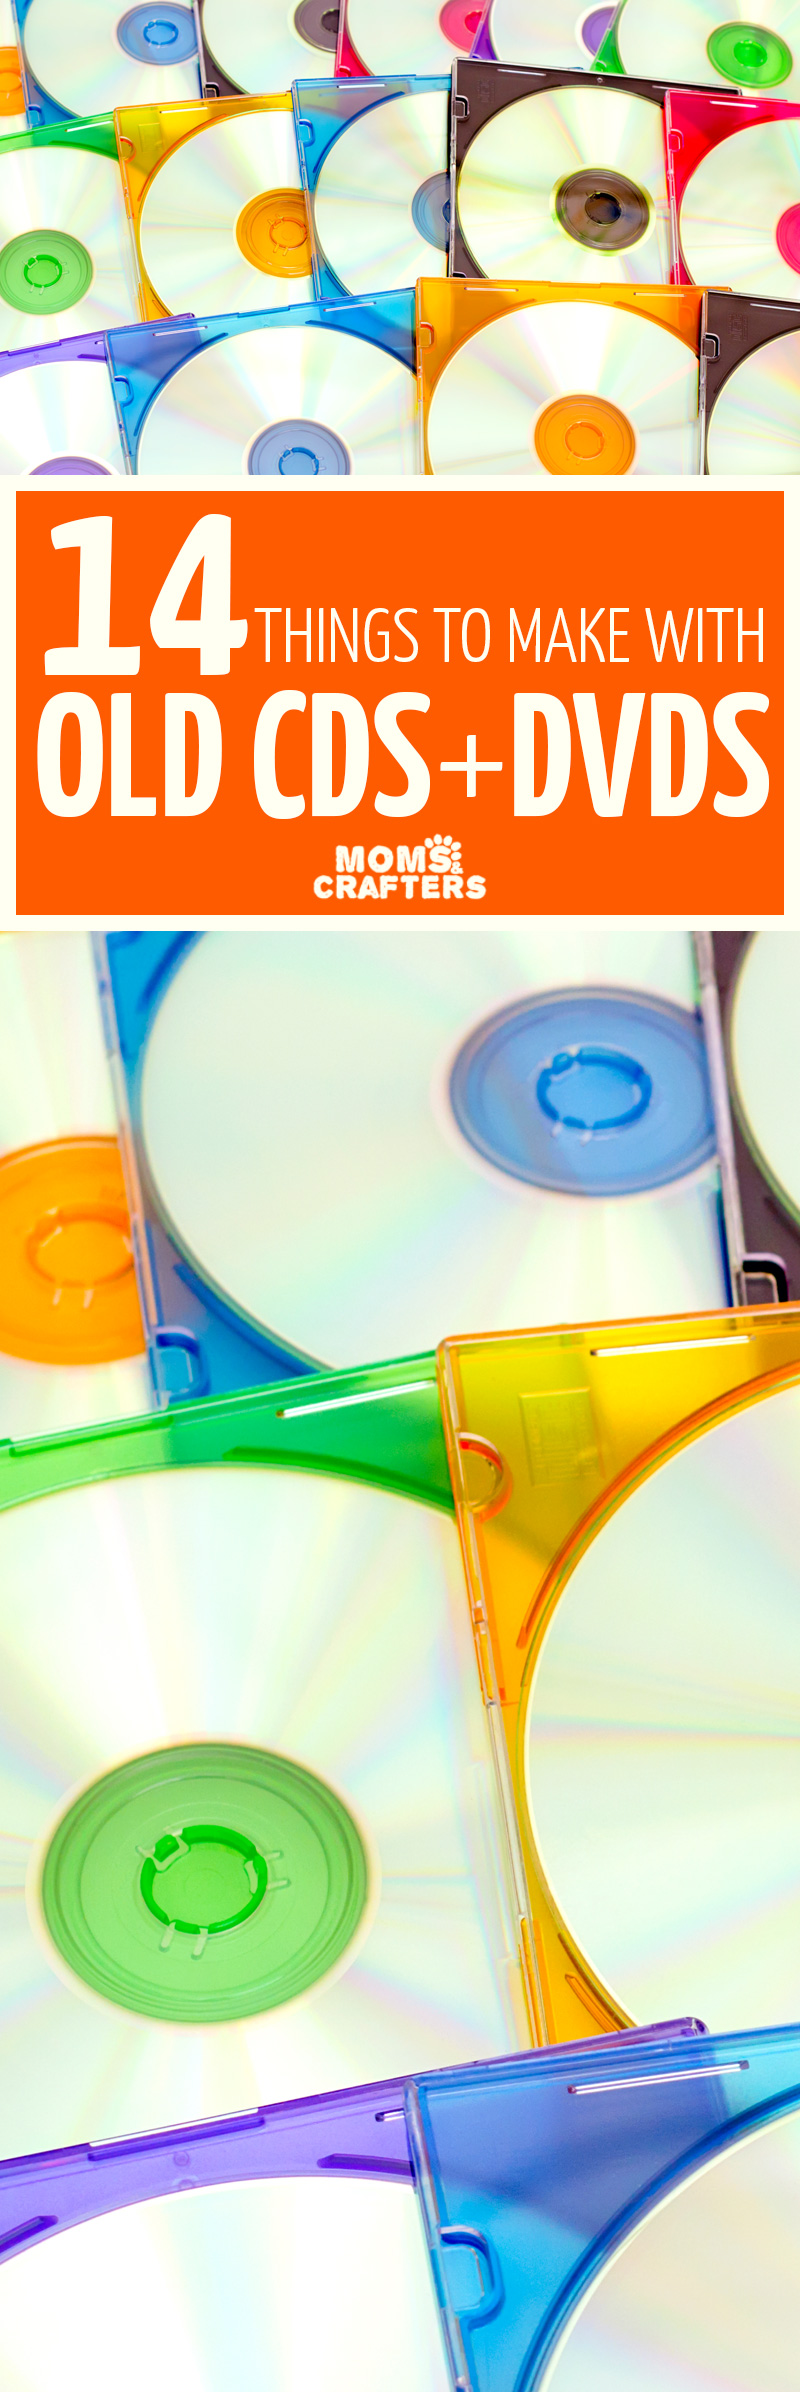 IF you're looking for cool ways to upcycle old cds and dvds you'll love these things to do with cds and dvds! These cool things to make with old cds include easy DVD and CD crafts for kids, adults, and teens too! #cdcrafts #upcycle #recycle #easycrafts #dvdcrafts #recycledcraft